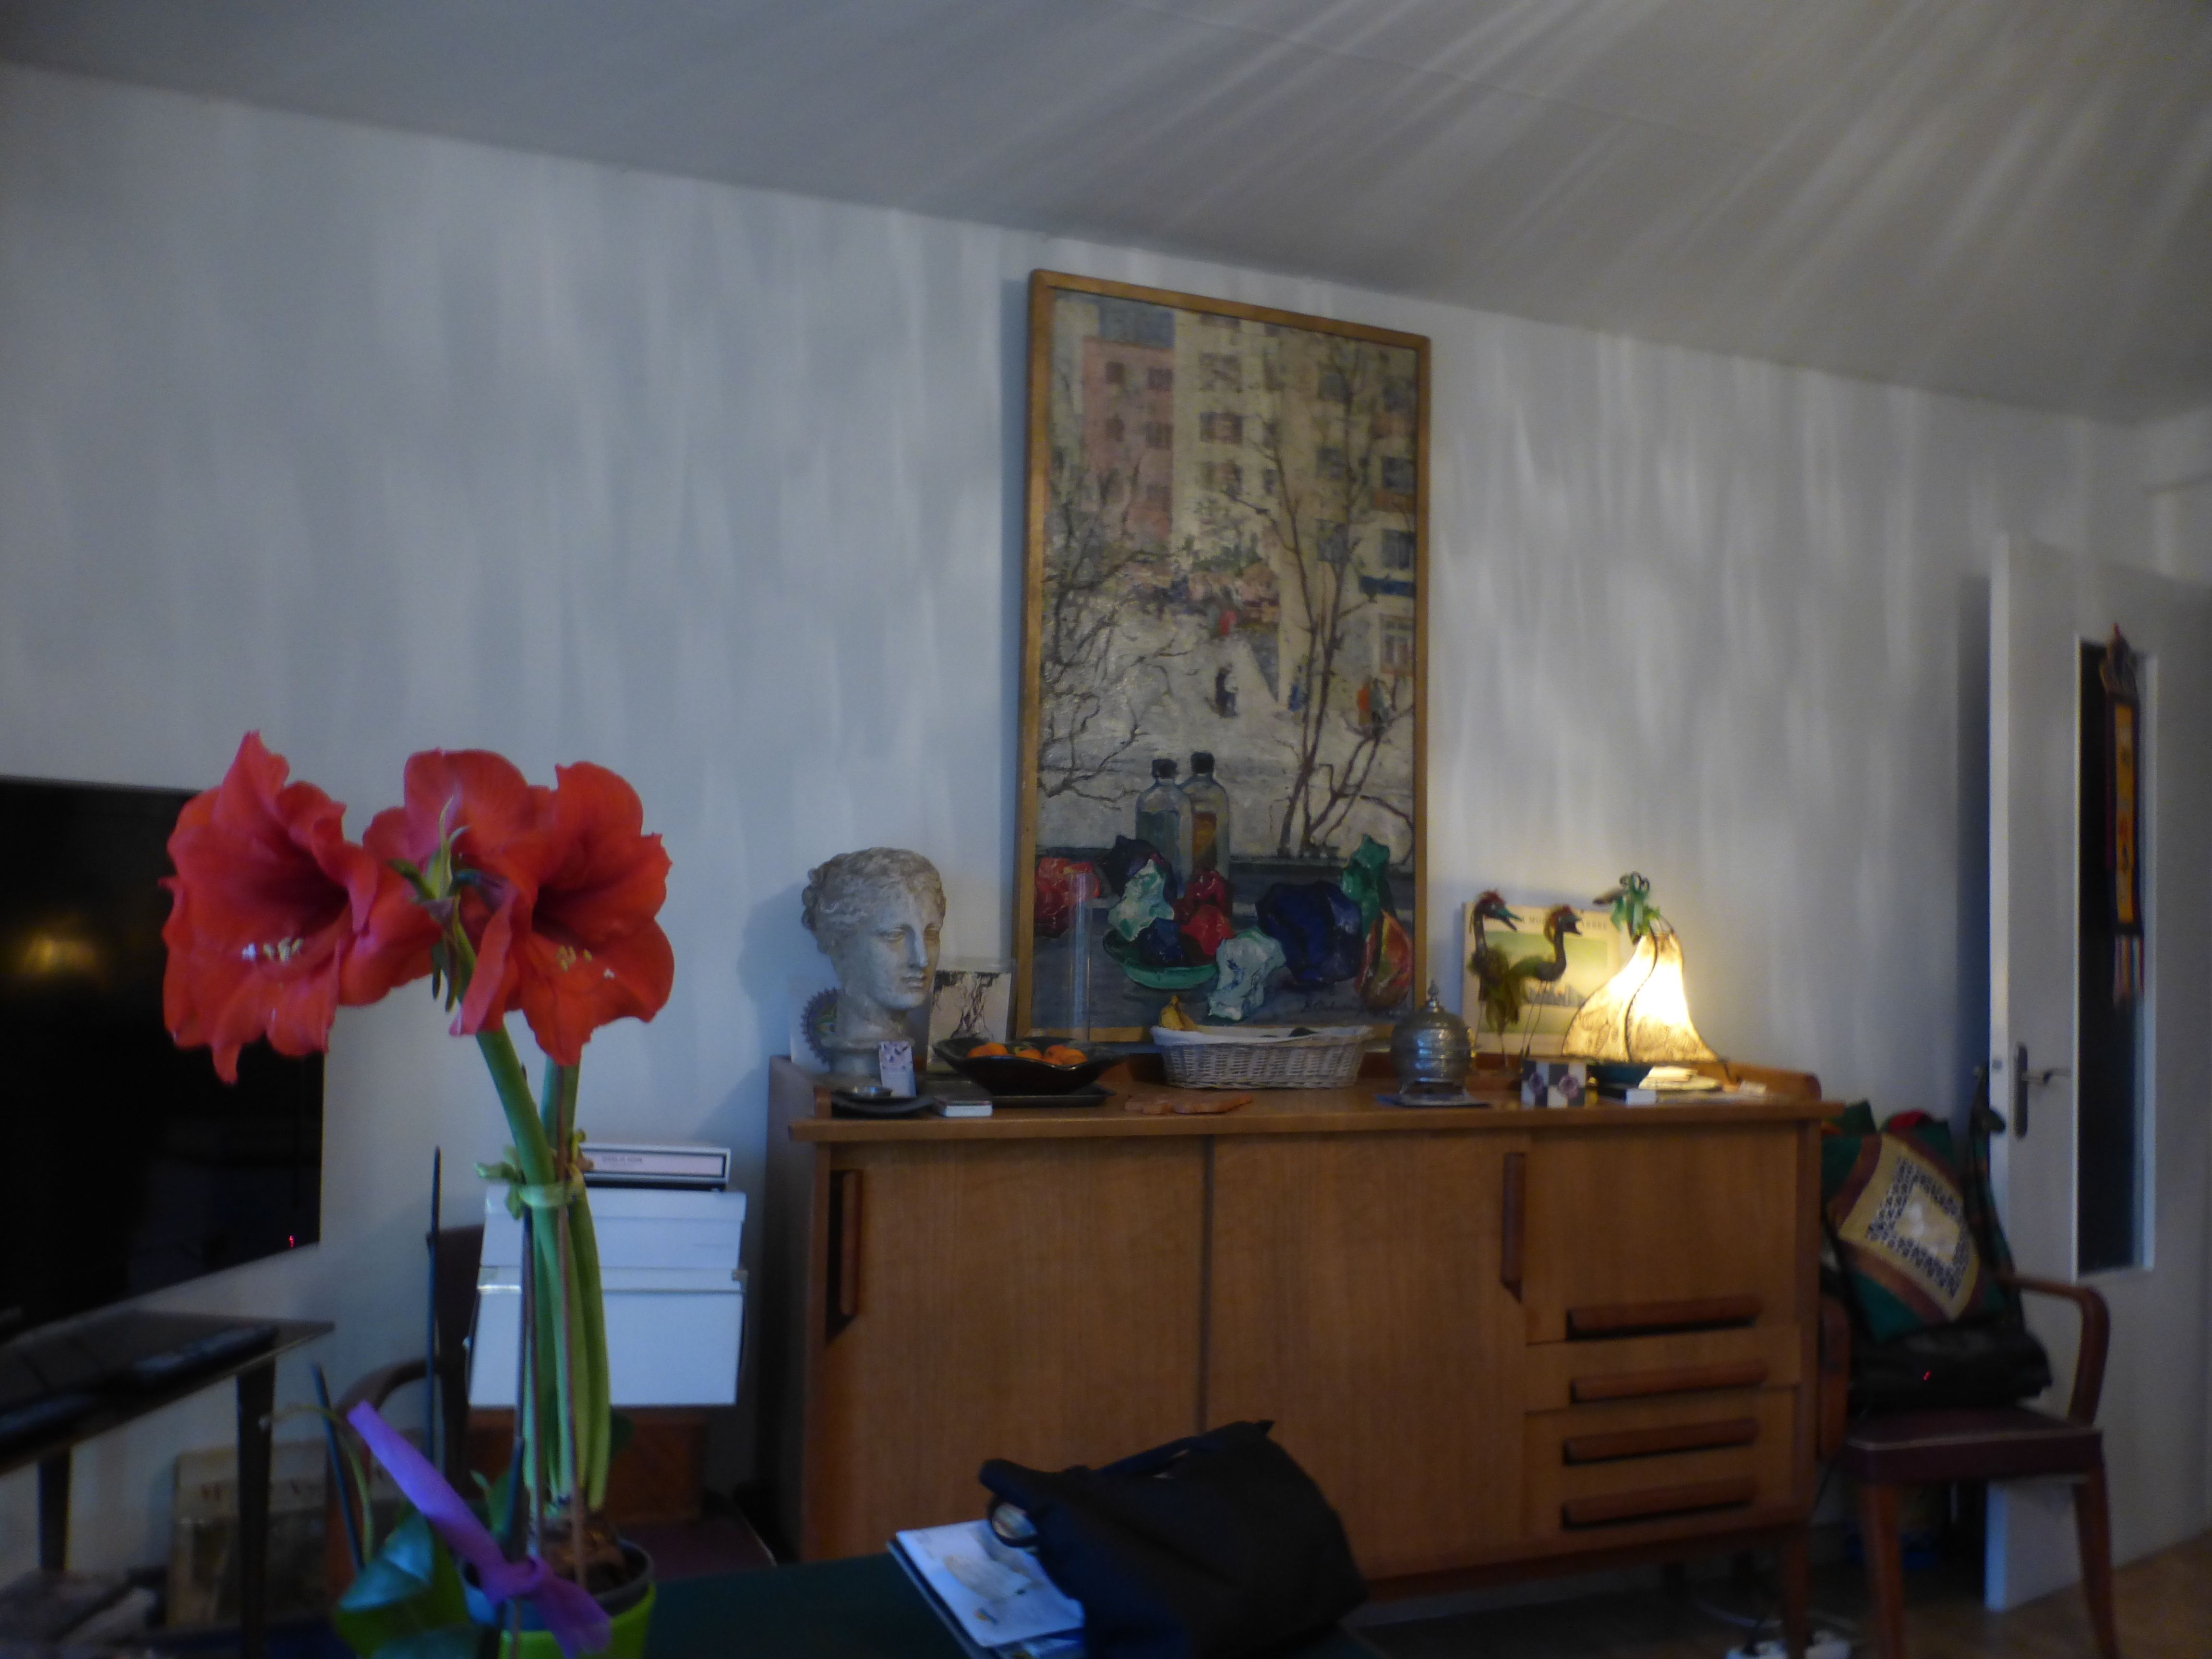 Chambre-Colocation Montpellier NA & Location Chambre à louer Montpellier NA   Loue chambre meublée Montpellier NA   Logement Montpellier NA